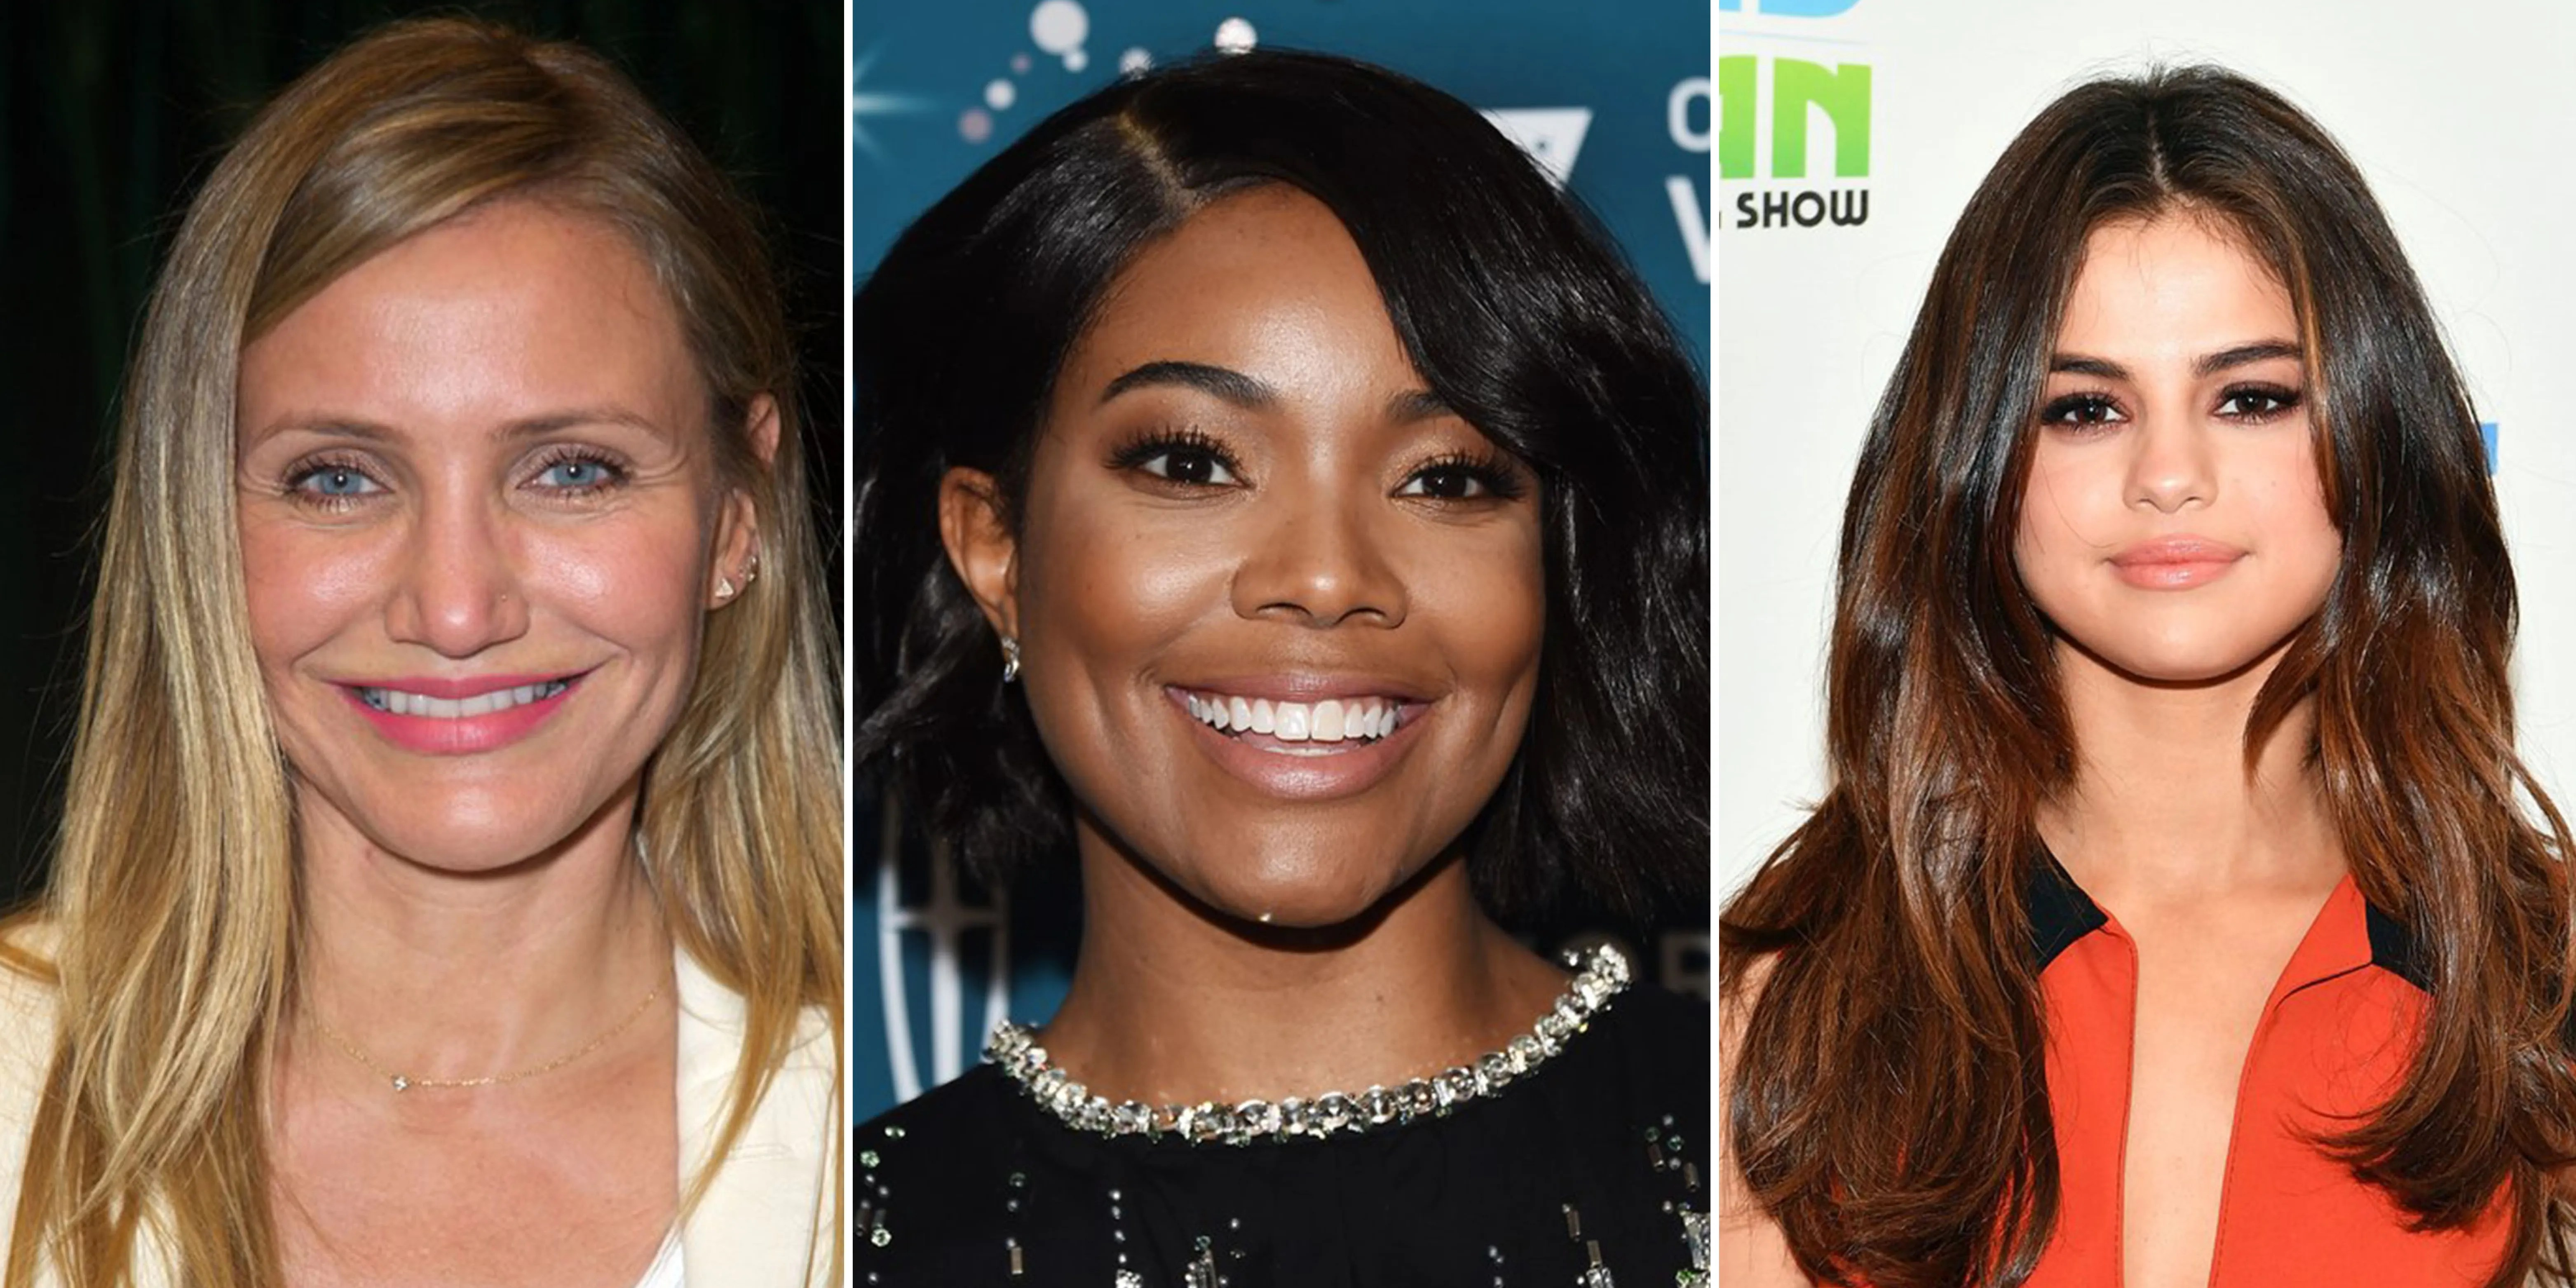 The 9 Best Haircuts For Round Faces According To Stylists Allure